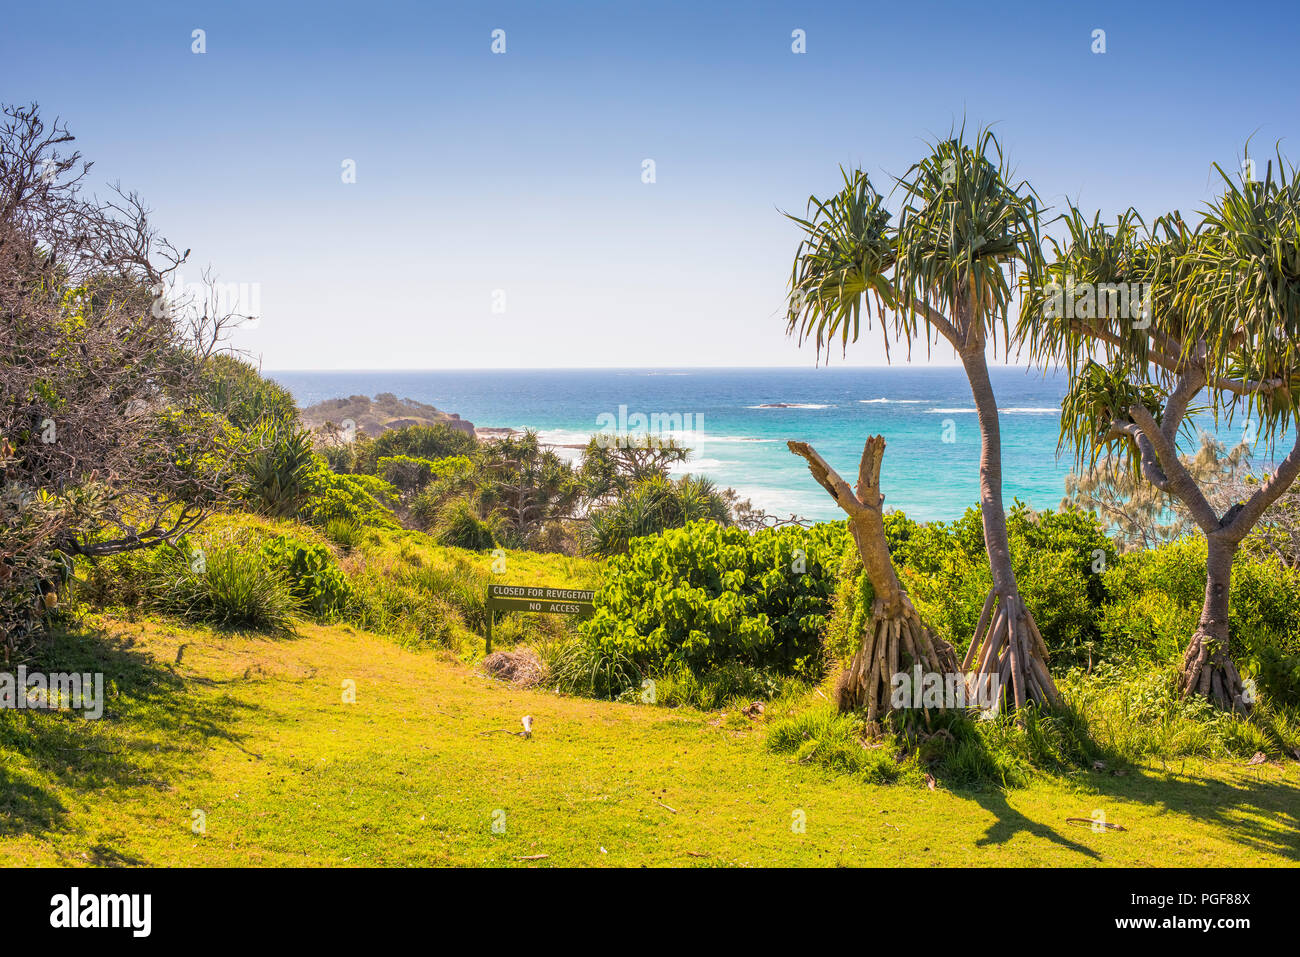 Panoramic view out over the ocean at Point Lookout on North Stradbroke Island, Queensland, Australia - Stock Image